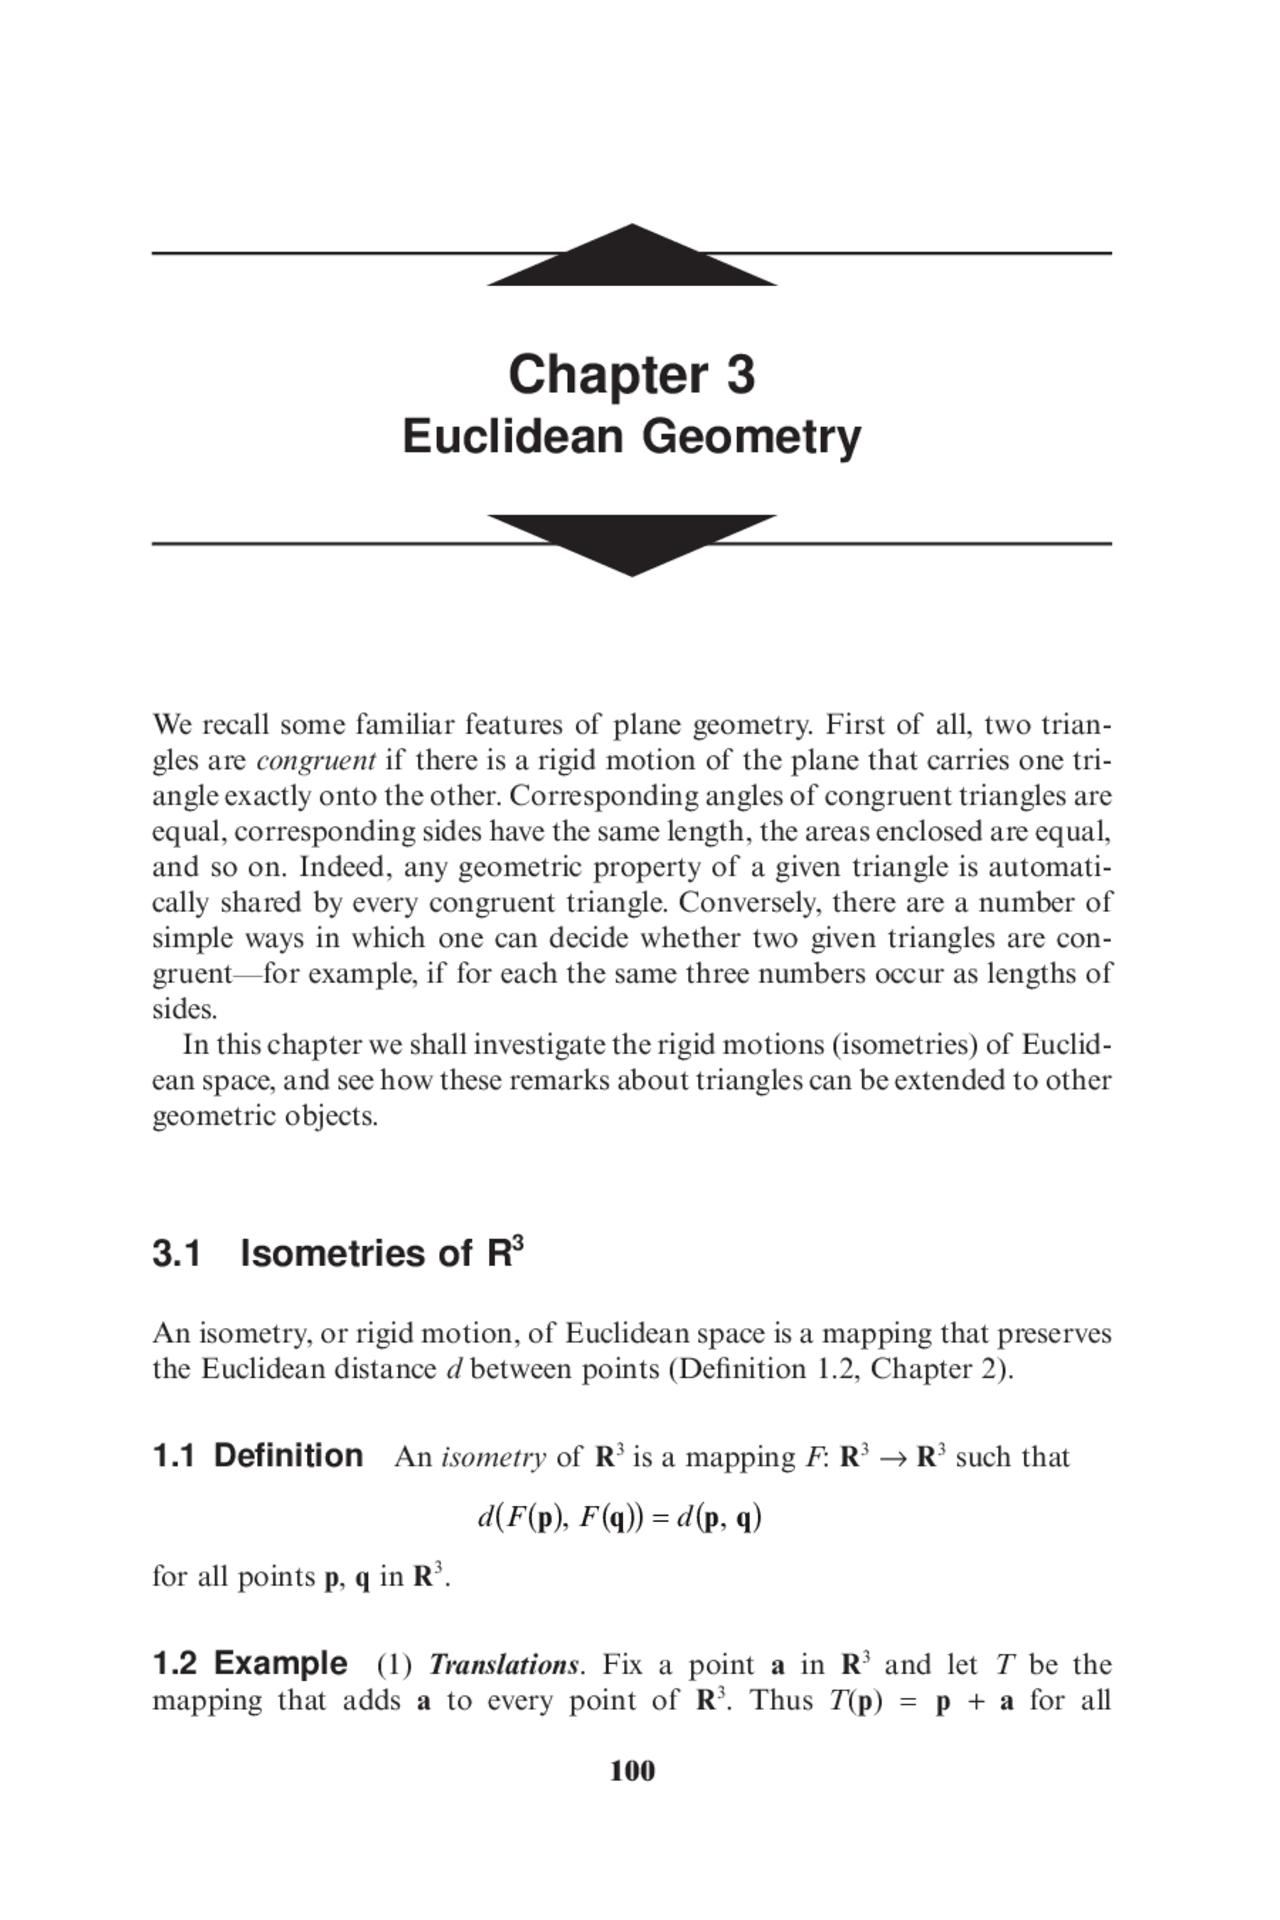 An Isometry Or Rigid Motion Of Euclidean Space Is A Mapping That Preserves The Euclidean Distance D Between Points Docsity